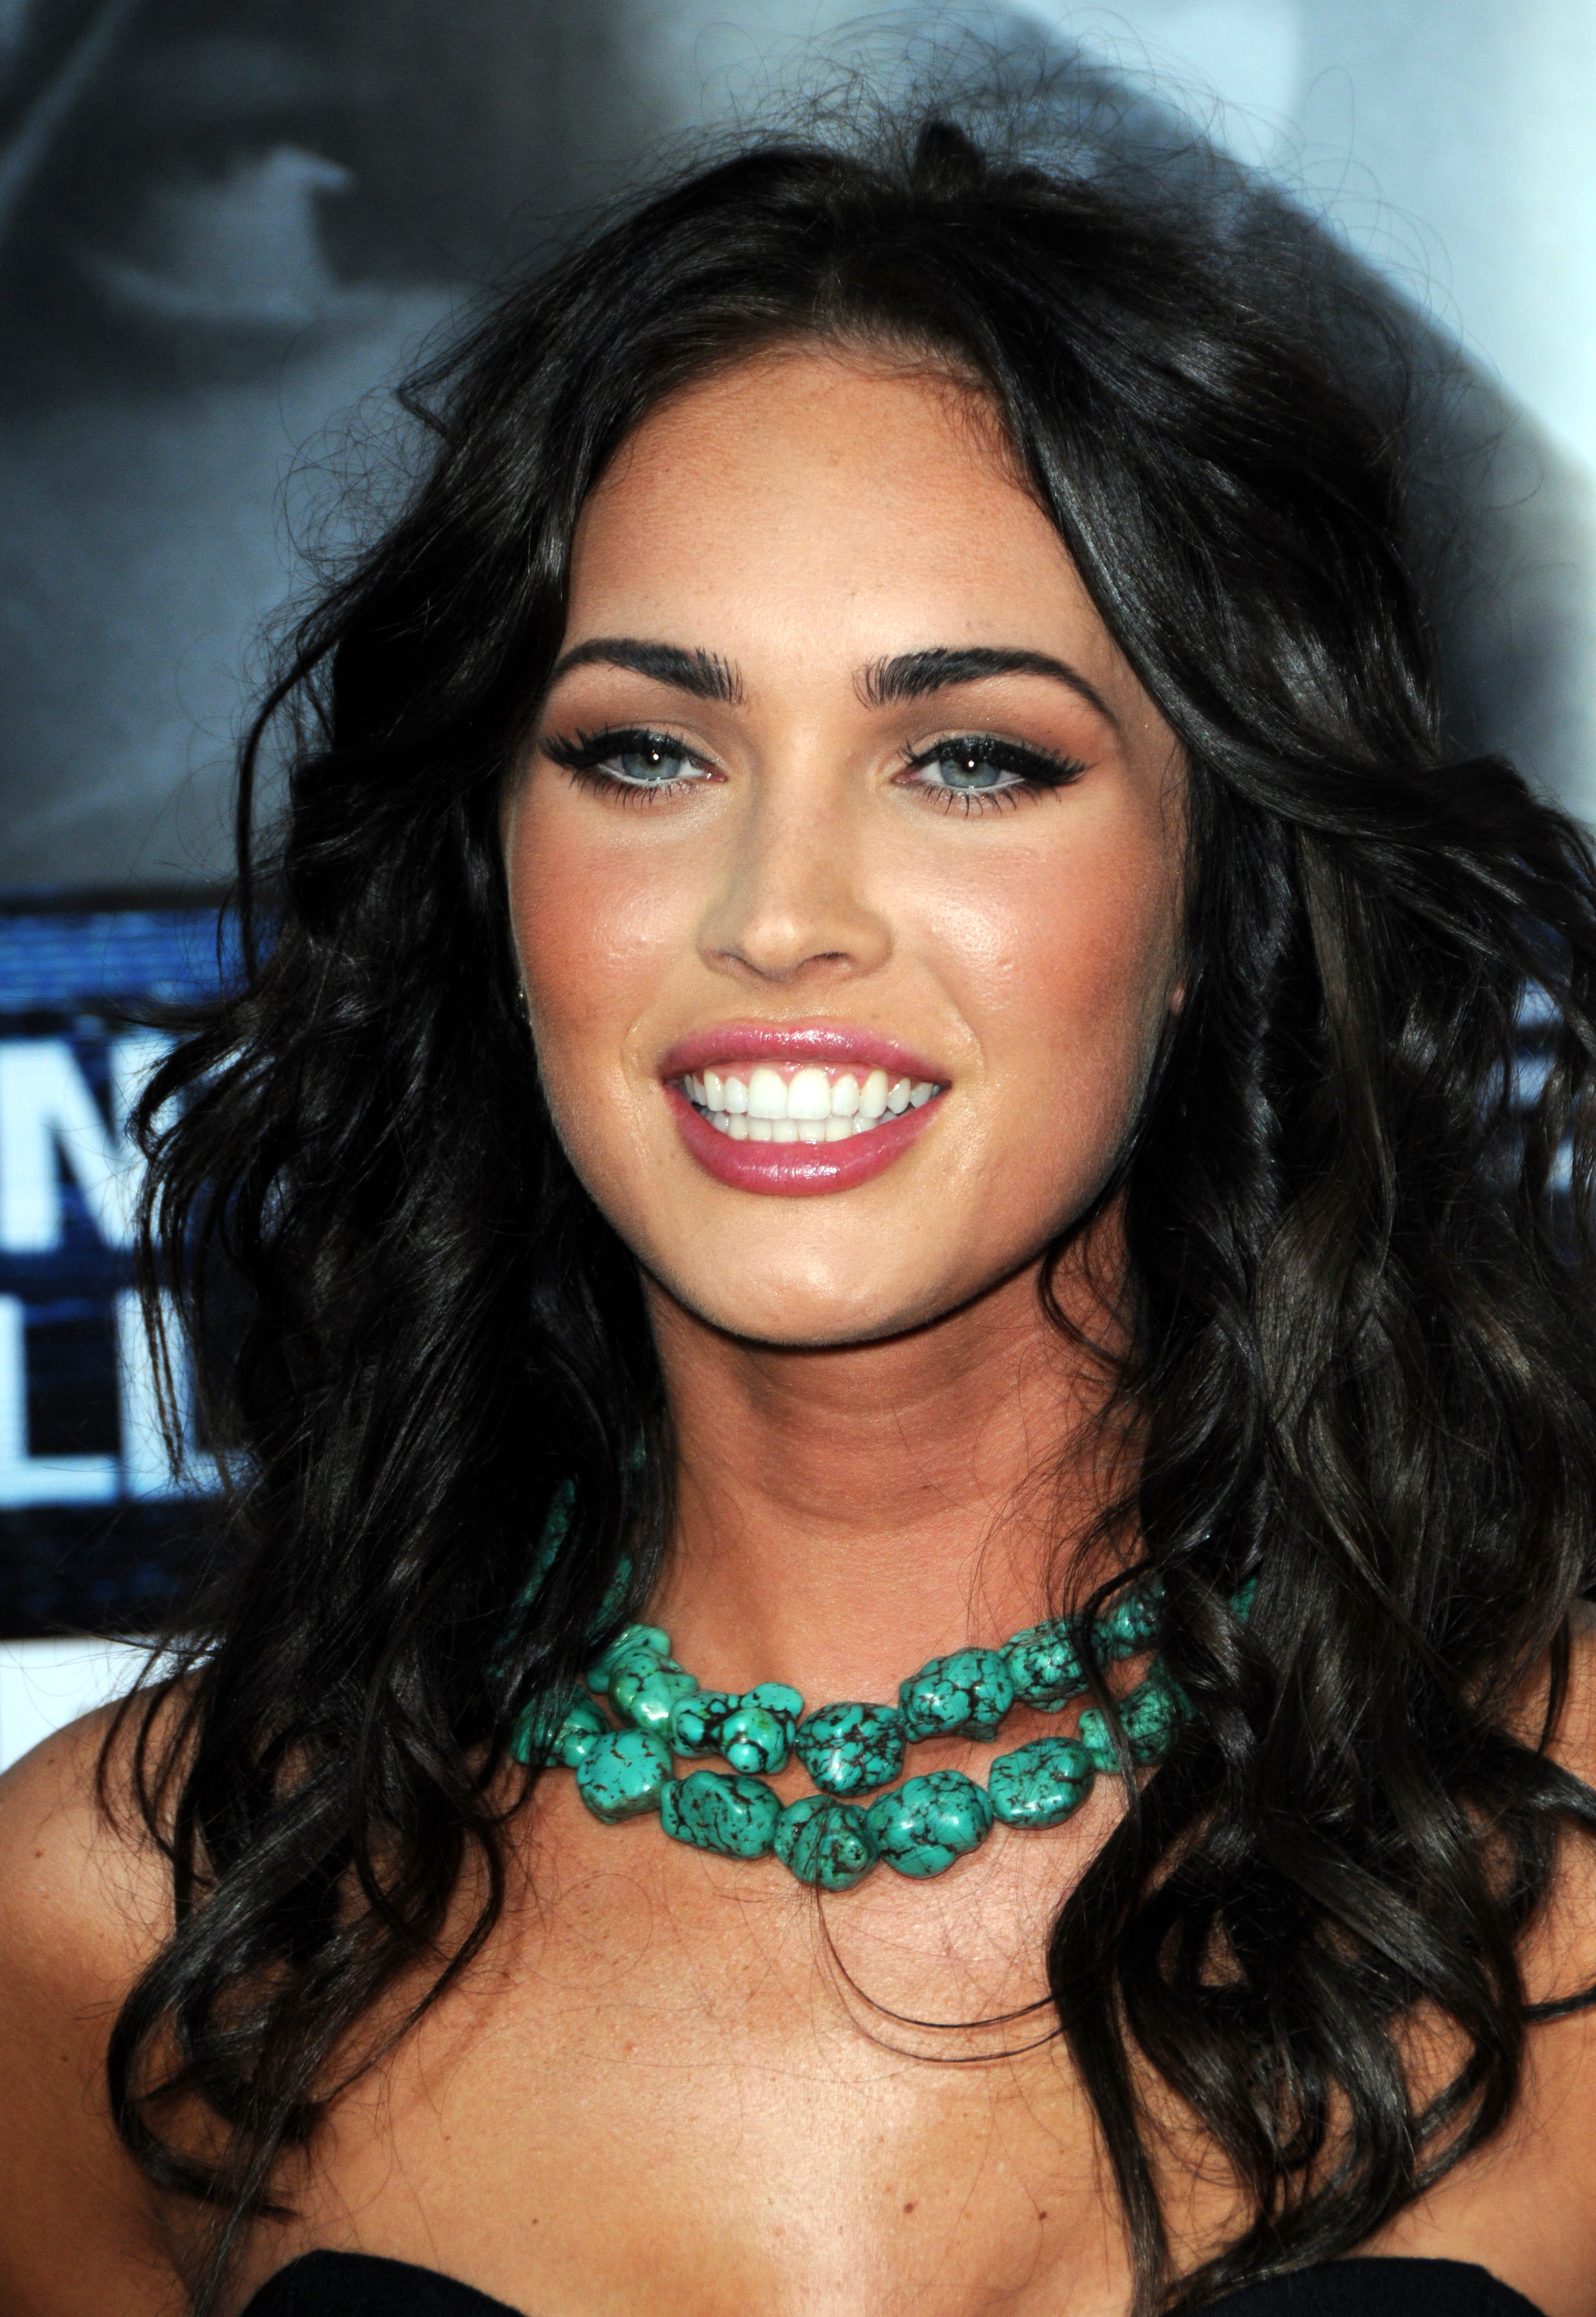 ... file hosting: Megan Fox , Celebrities Female , 2480x3600 , Wallpapers